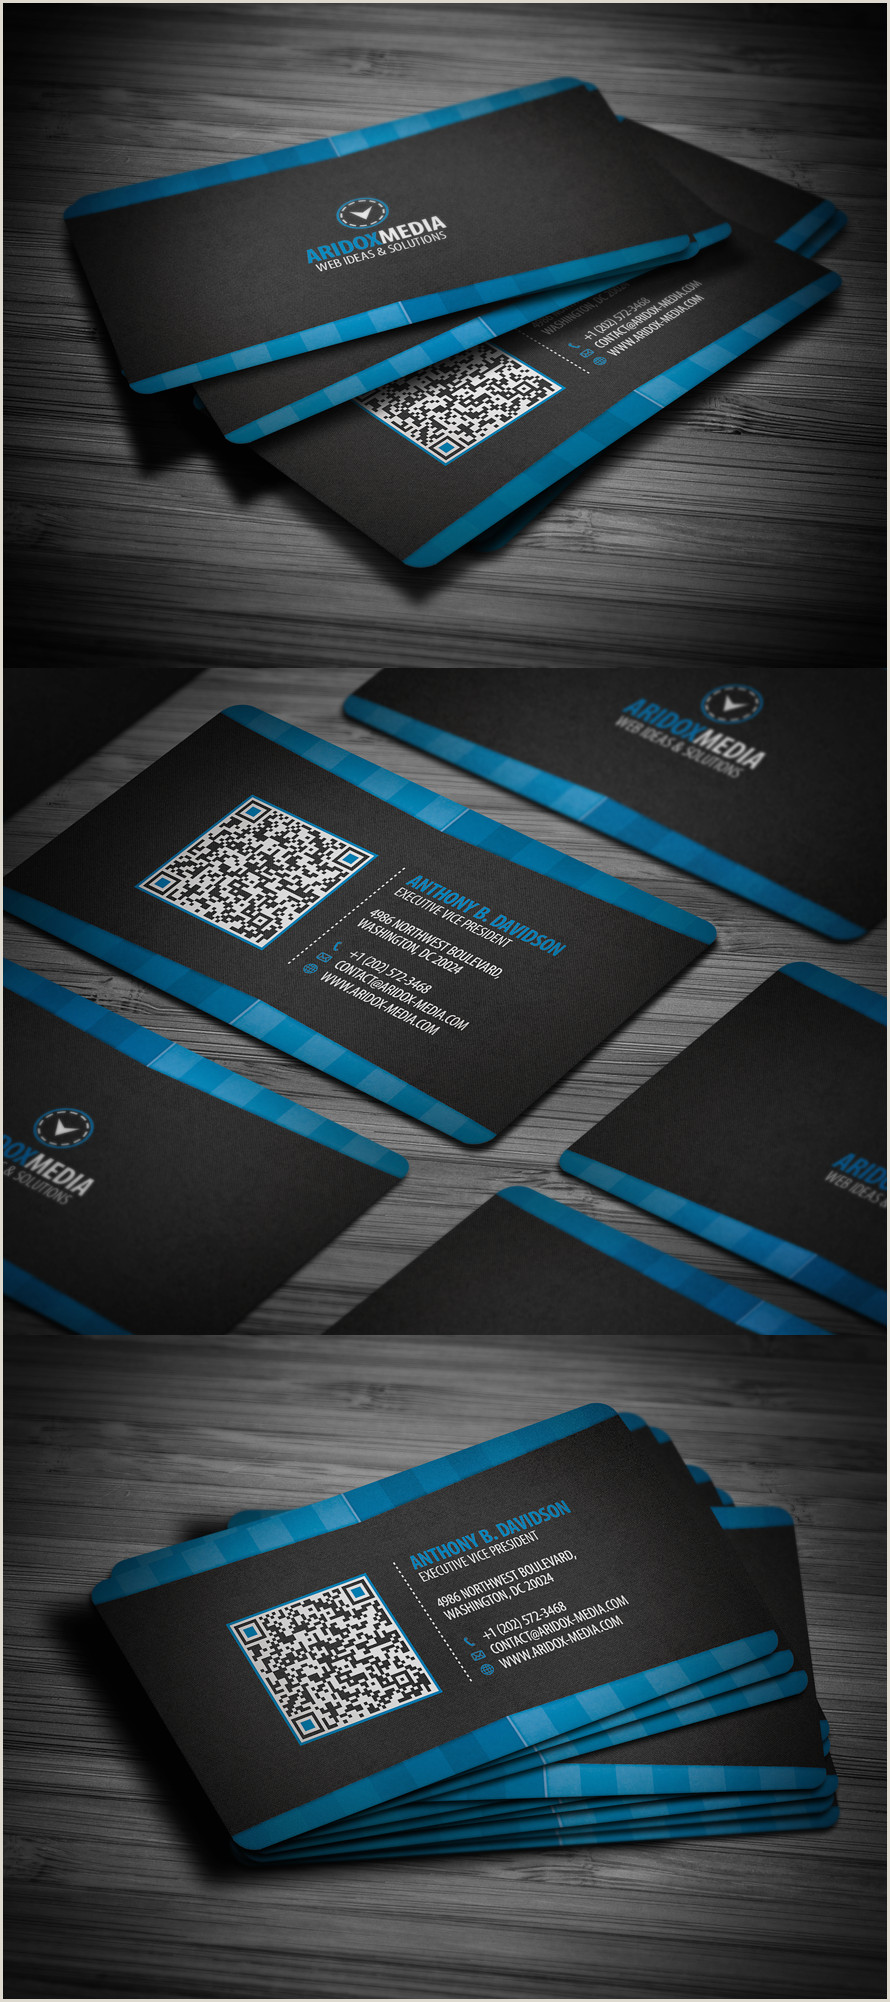 Buy Unique Business Cards Professional Corporate Business Card By Flowpixel On